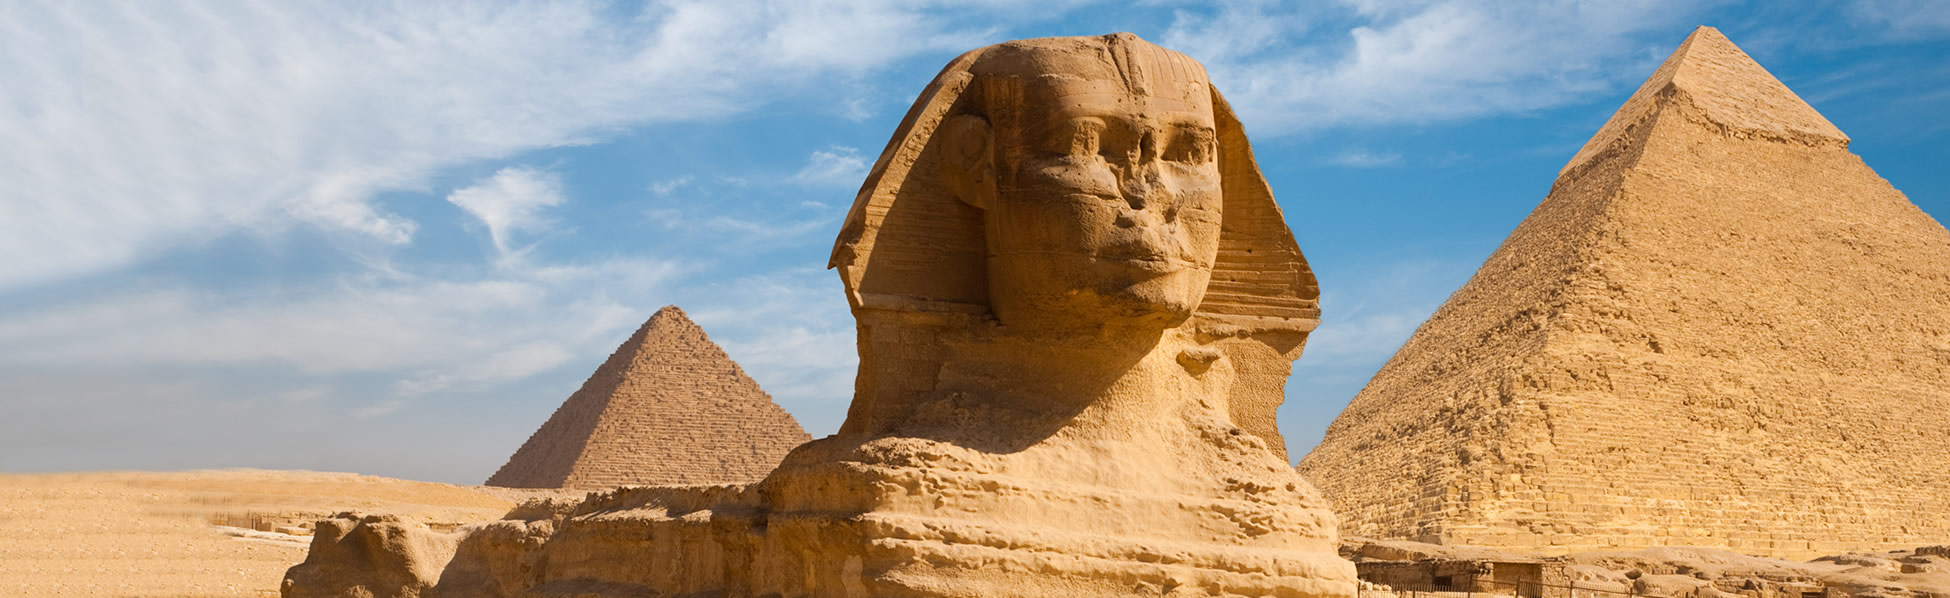 Egypt Cruises from Barrhead Travel